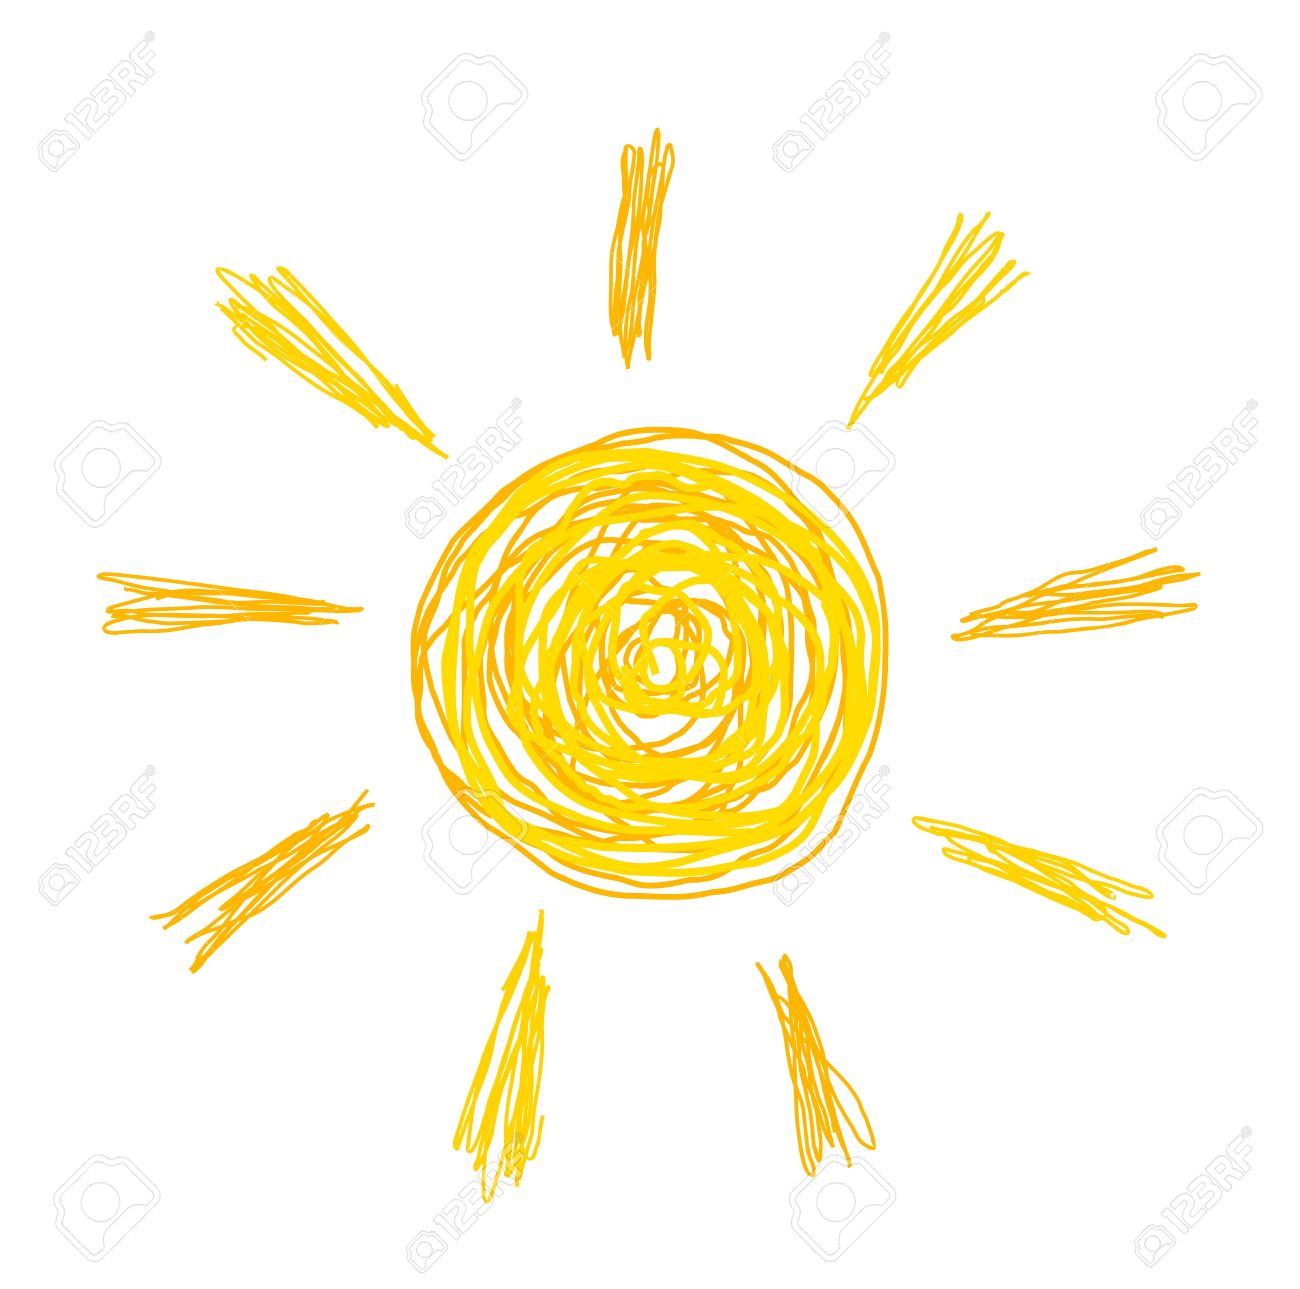 Uncategorized Drawing The Sun doodle sun drawing vector illustration royalty free cliparts stock 21137385